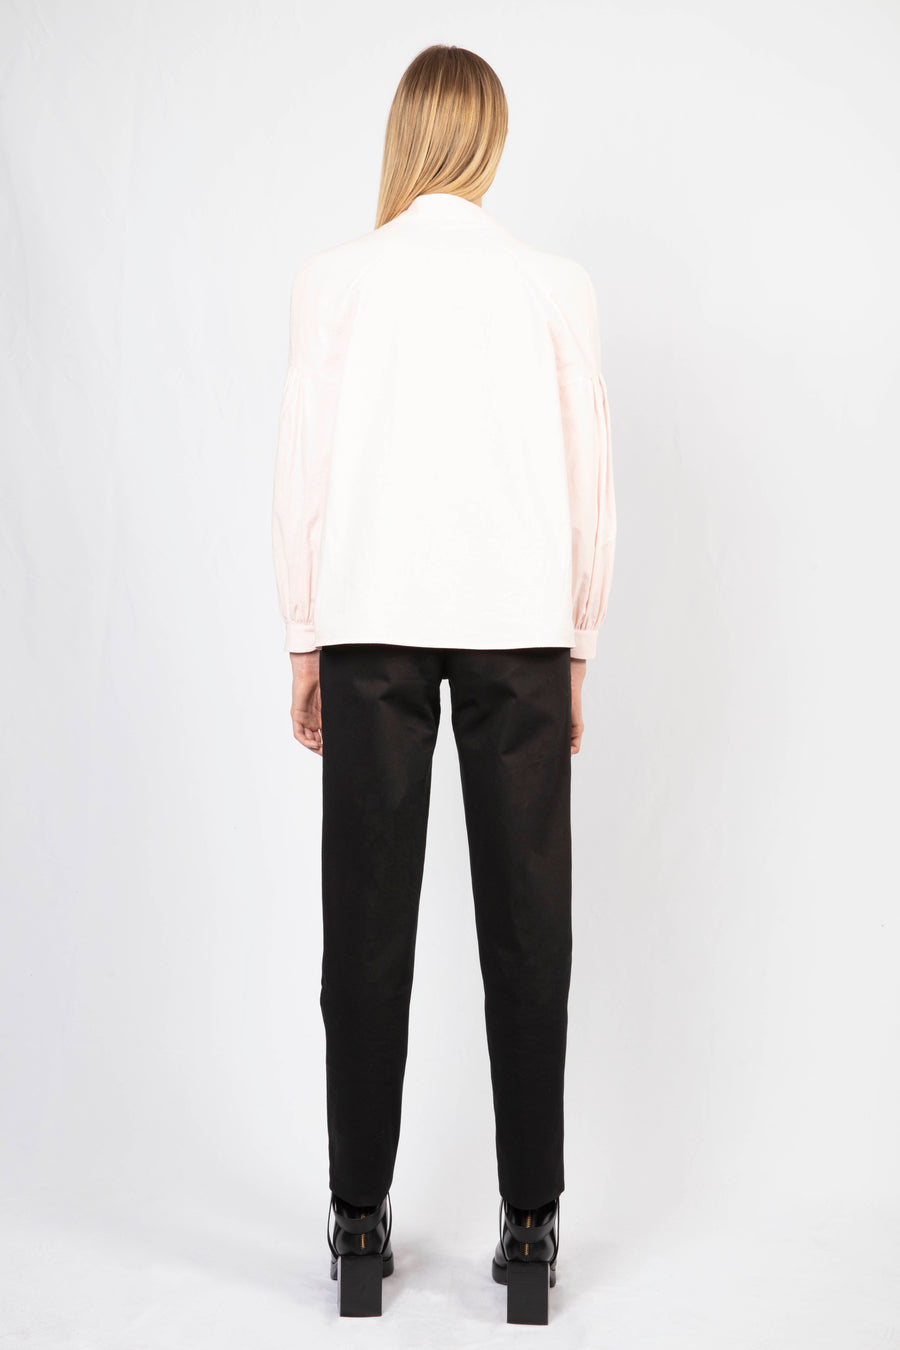 Mandarin Collar Shirt/High-waisted Tailored Pants